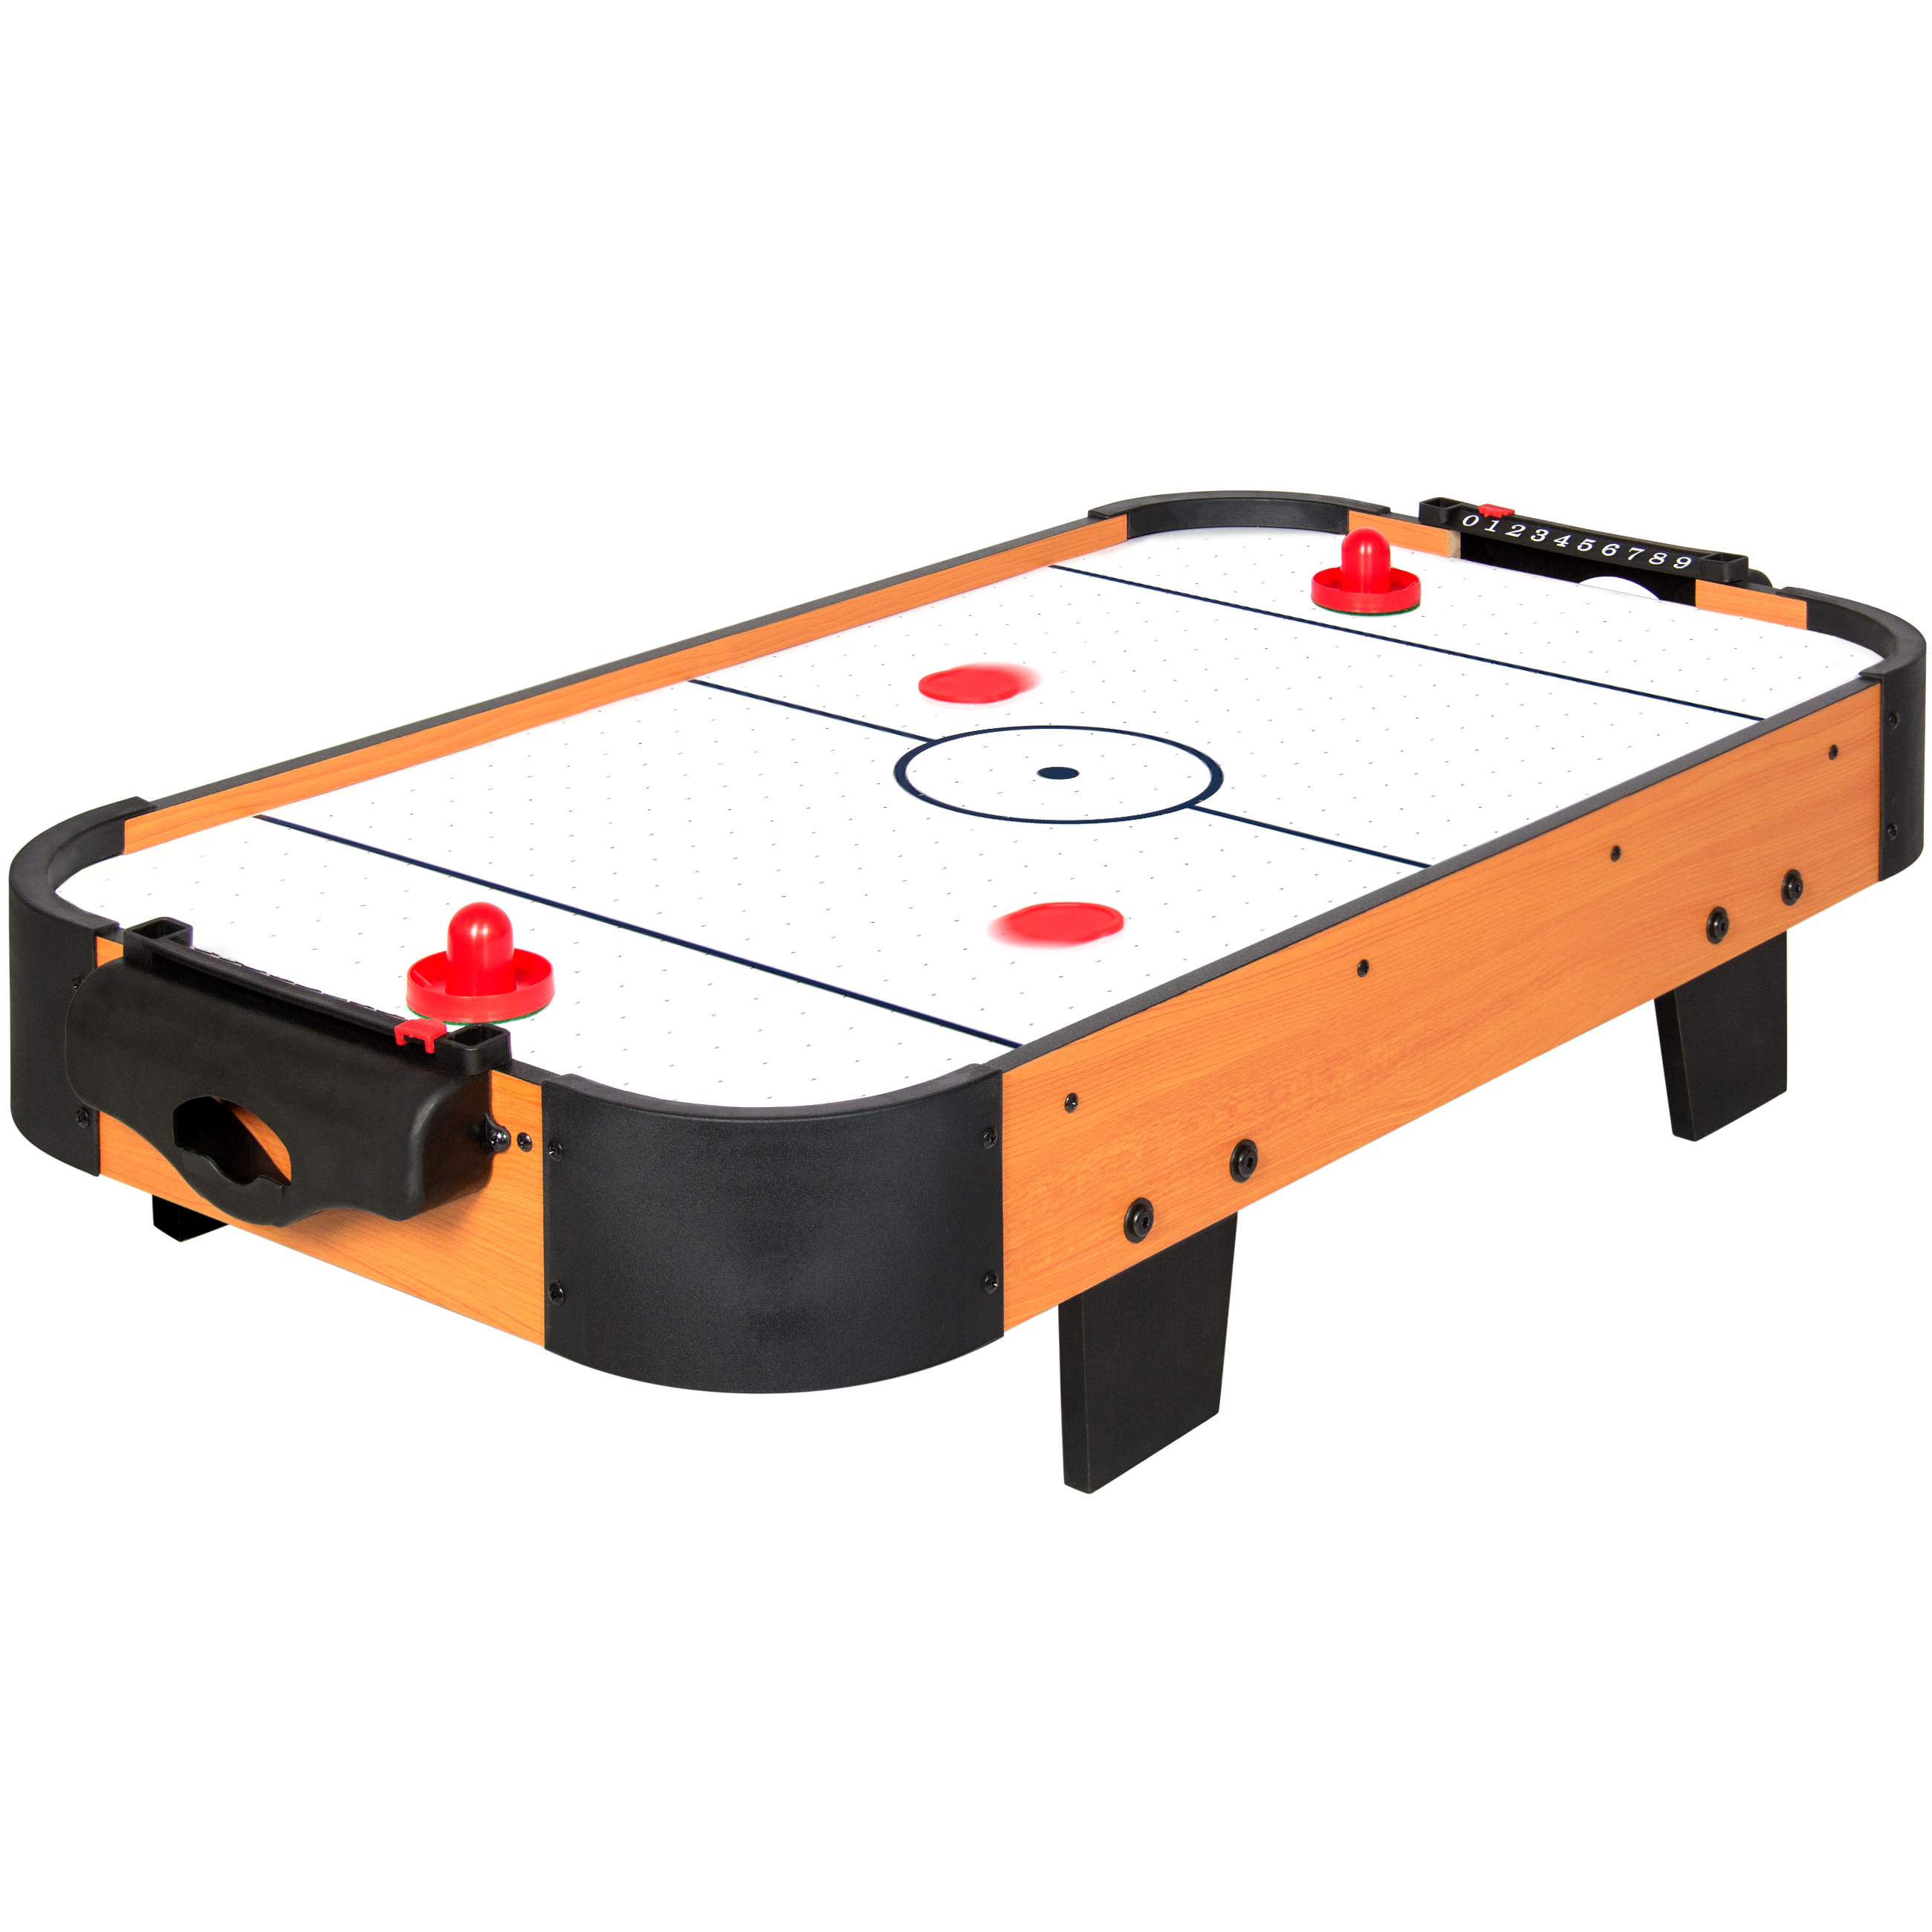 Hathaway air hockey 3 strikers and 2 5 puck set for Table hockey